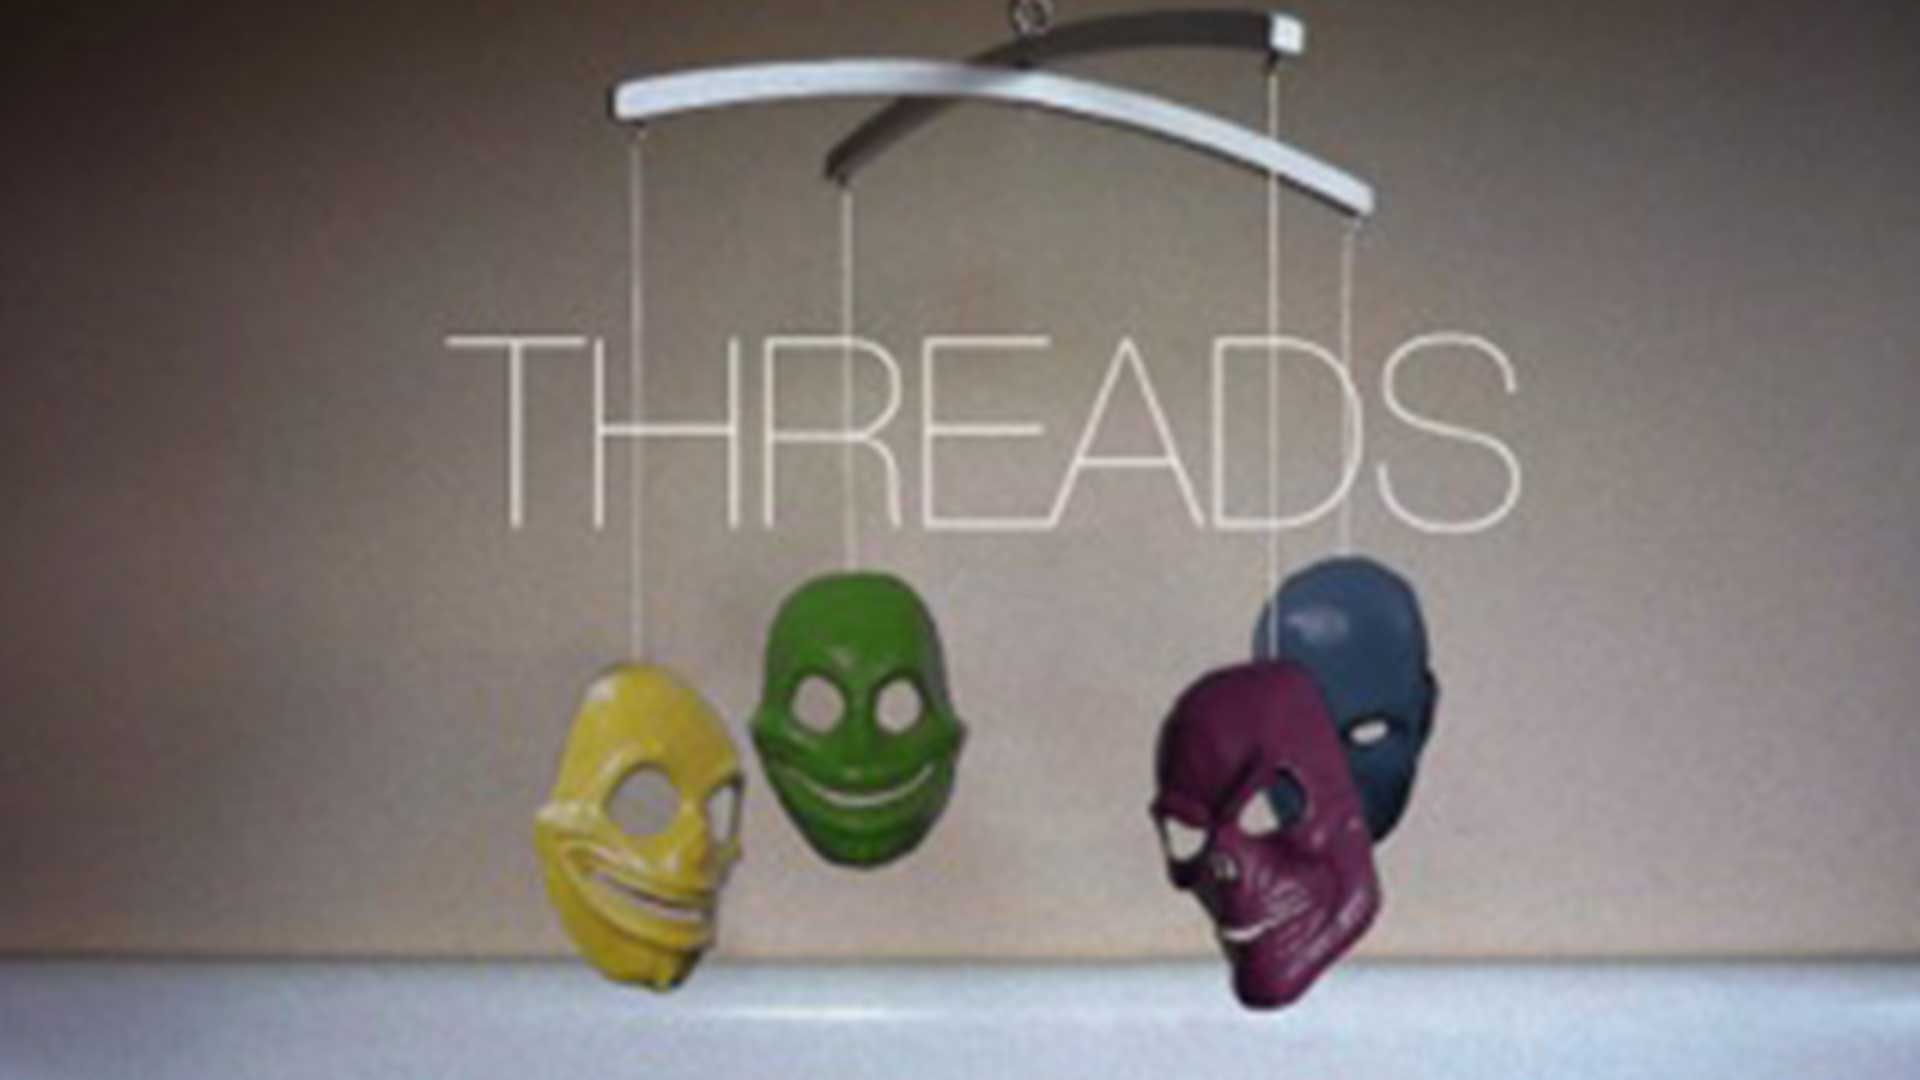 ``Threads`` Music Video Short Film